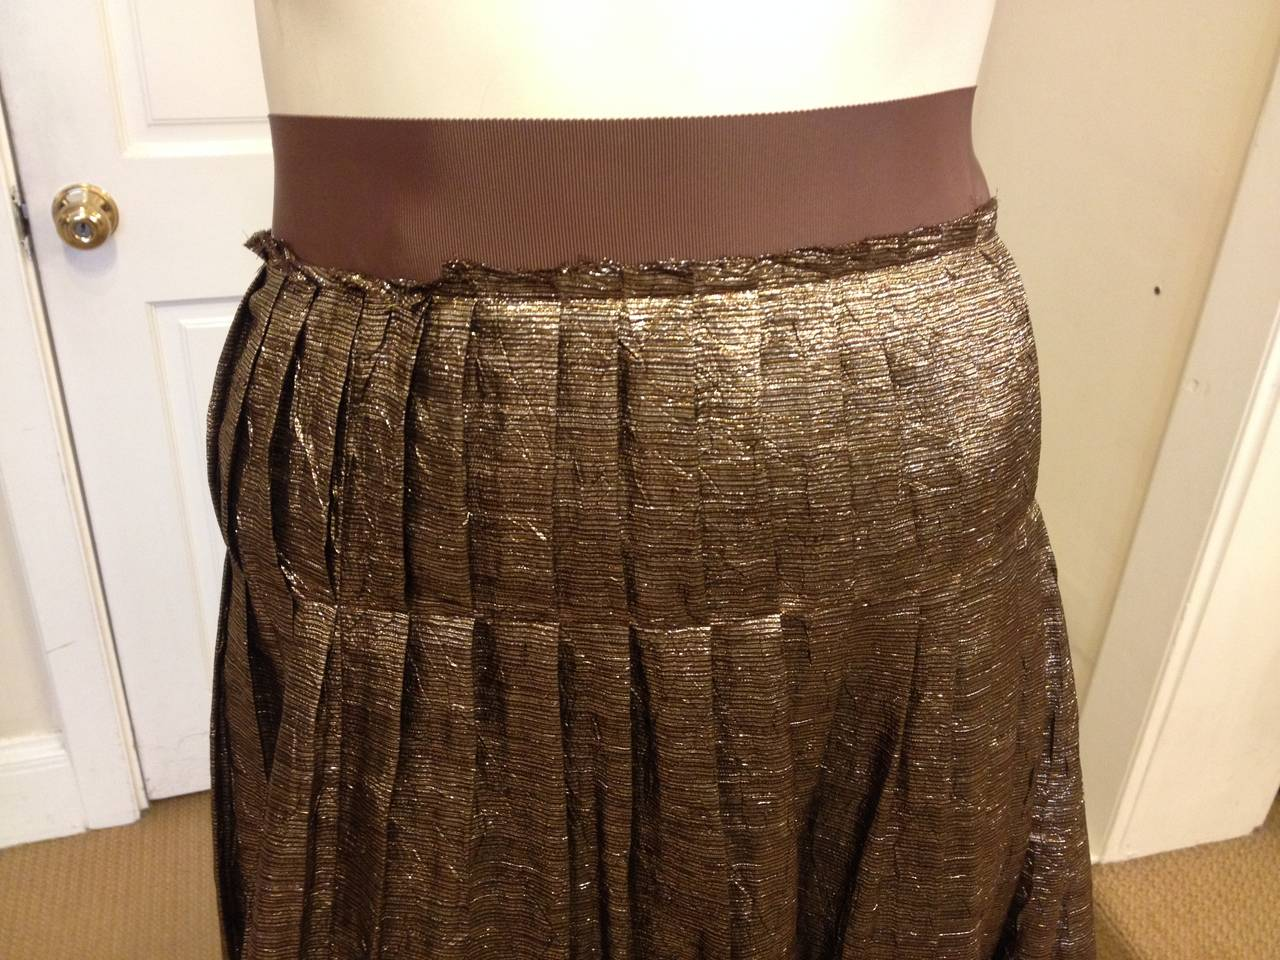 Lanvin Bronze Glittery Pleated Skirt In New never worn Condition For Sale In San Francisco, CA